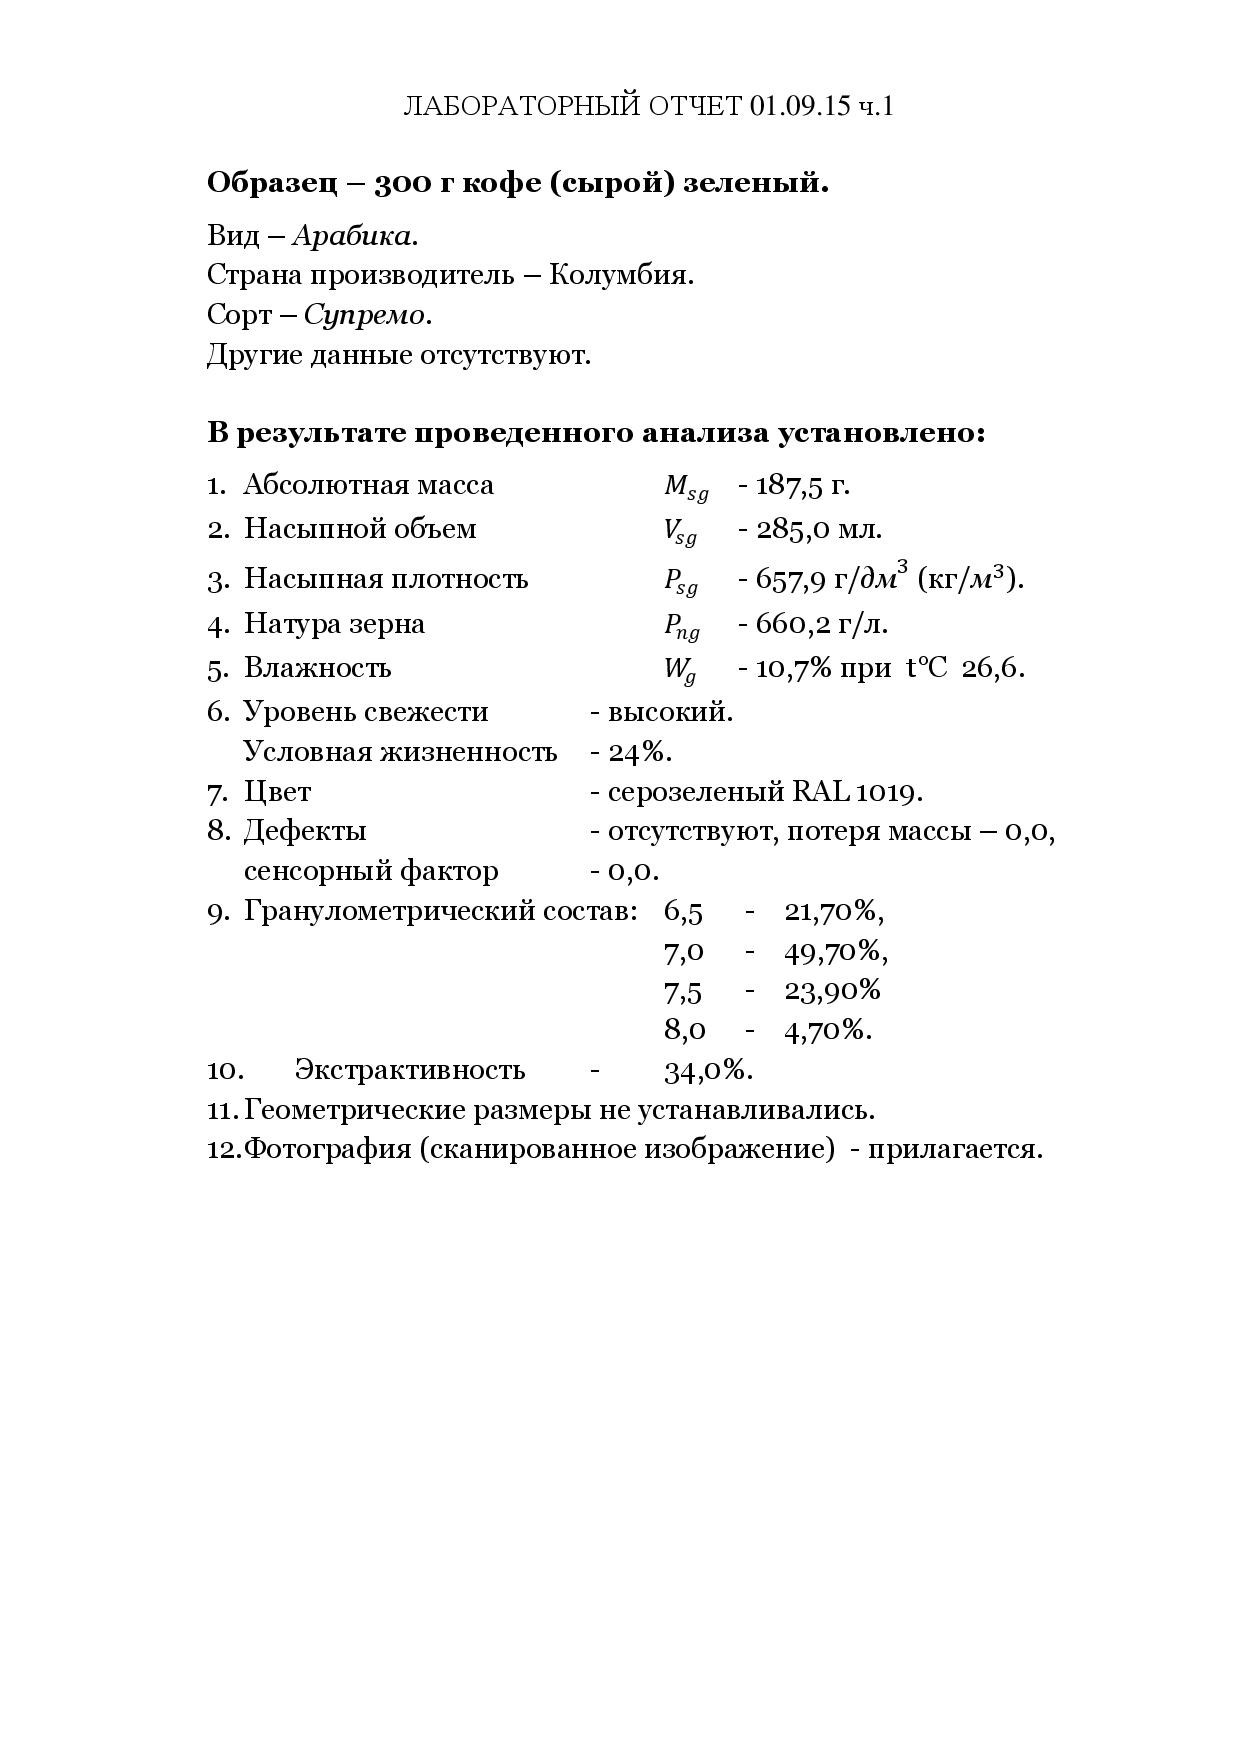 Document-page-001__1_.jpg